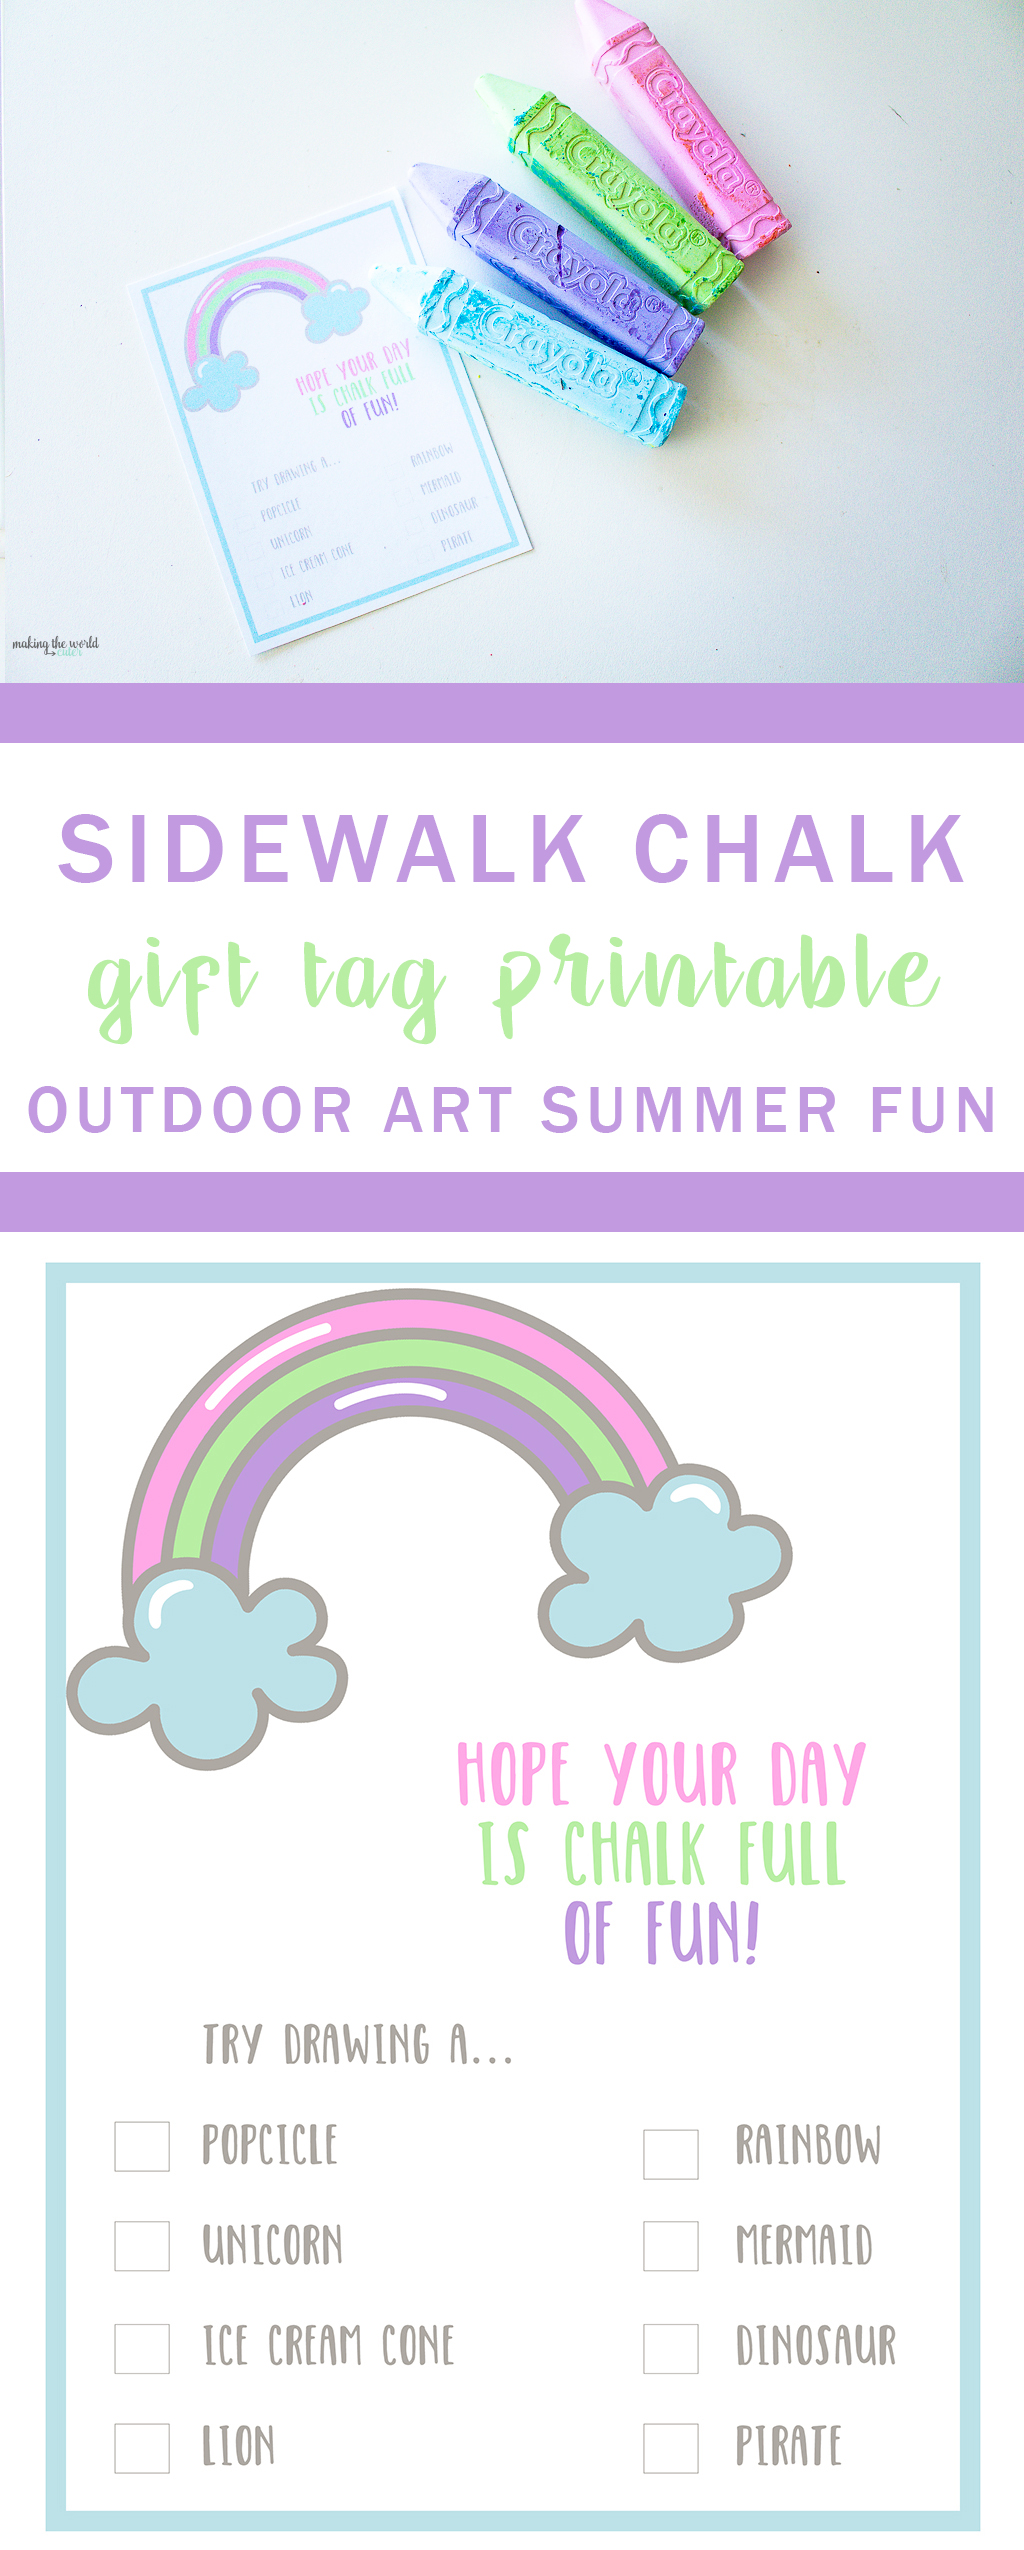 Outdoor Art Sidewalk Chalk Printable Gift Tag